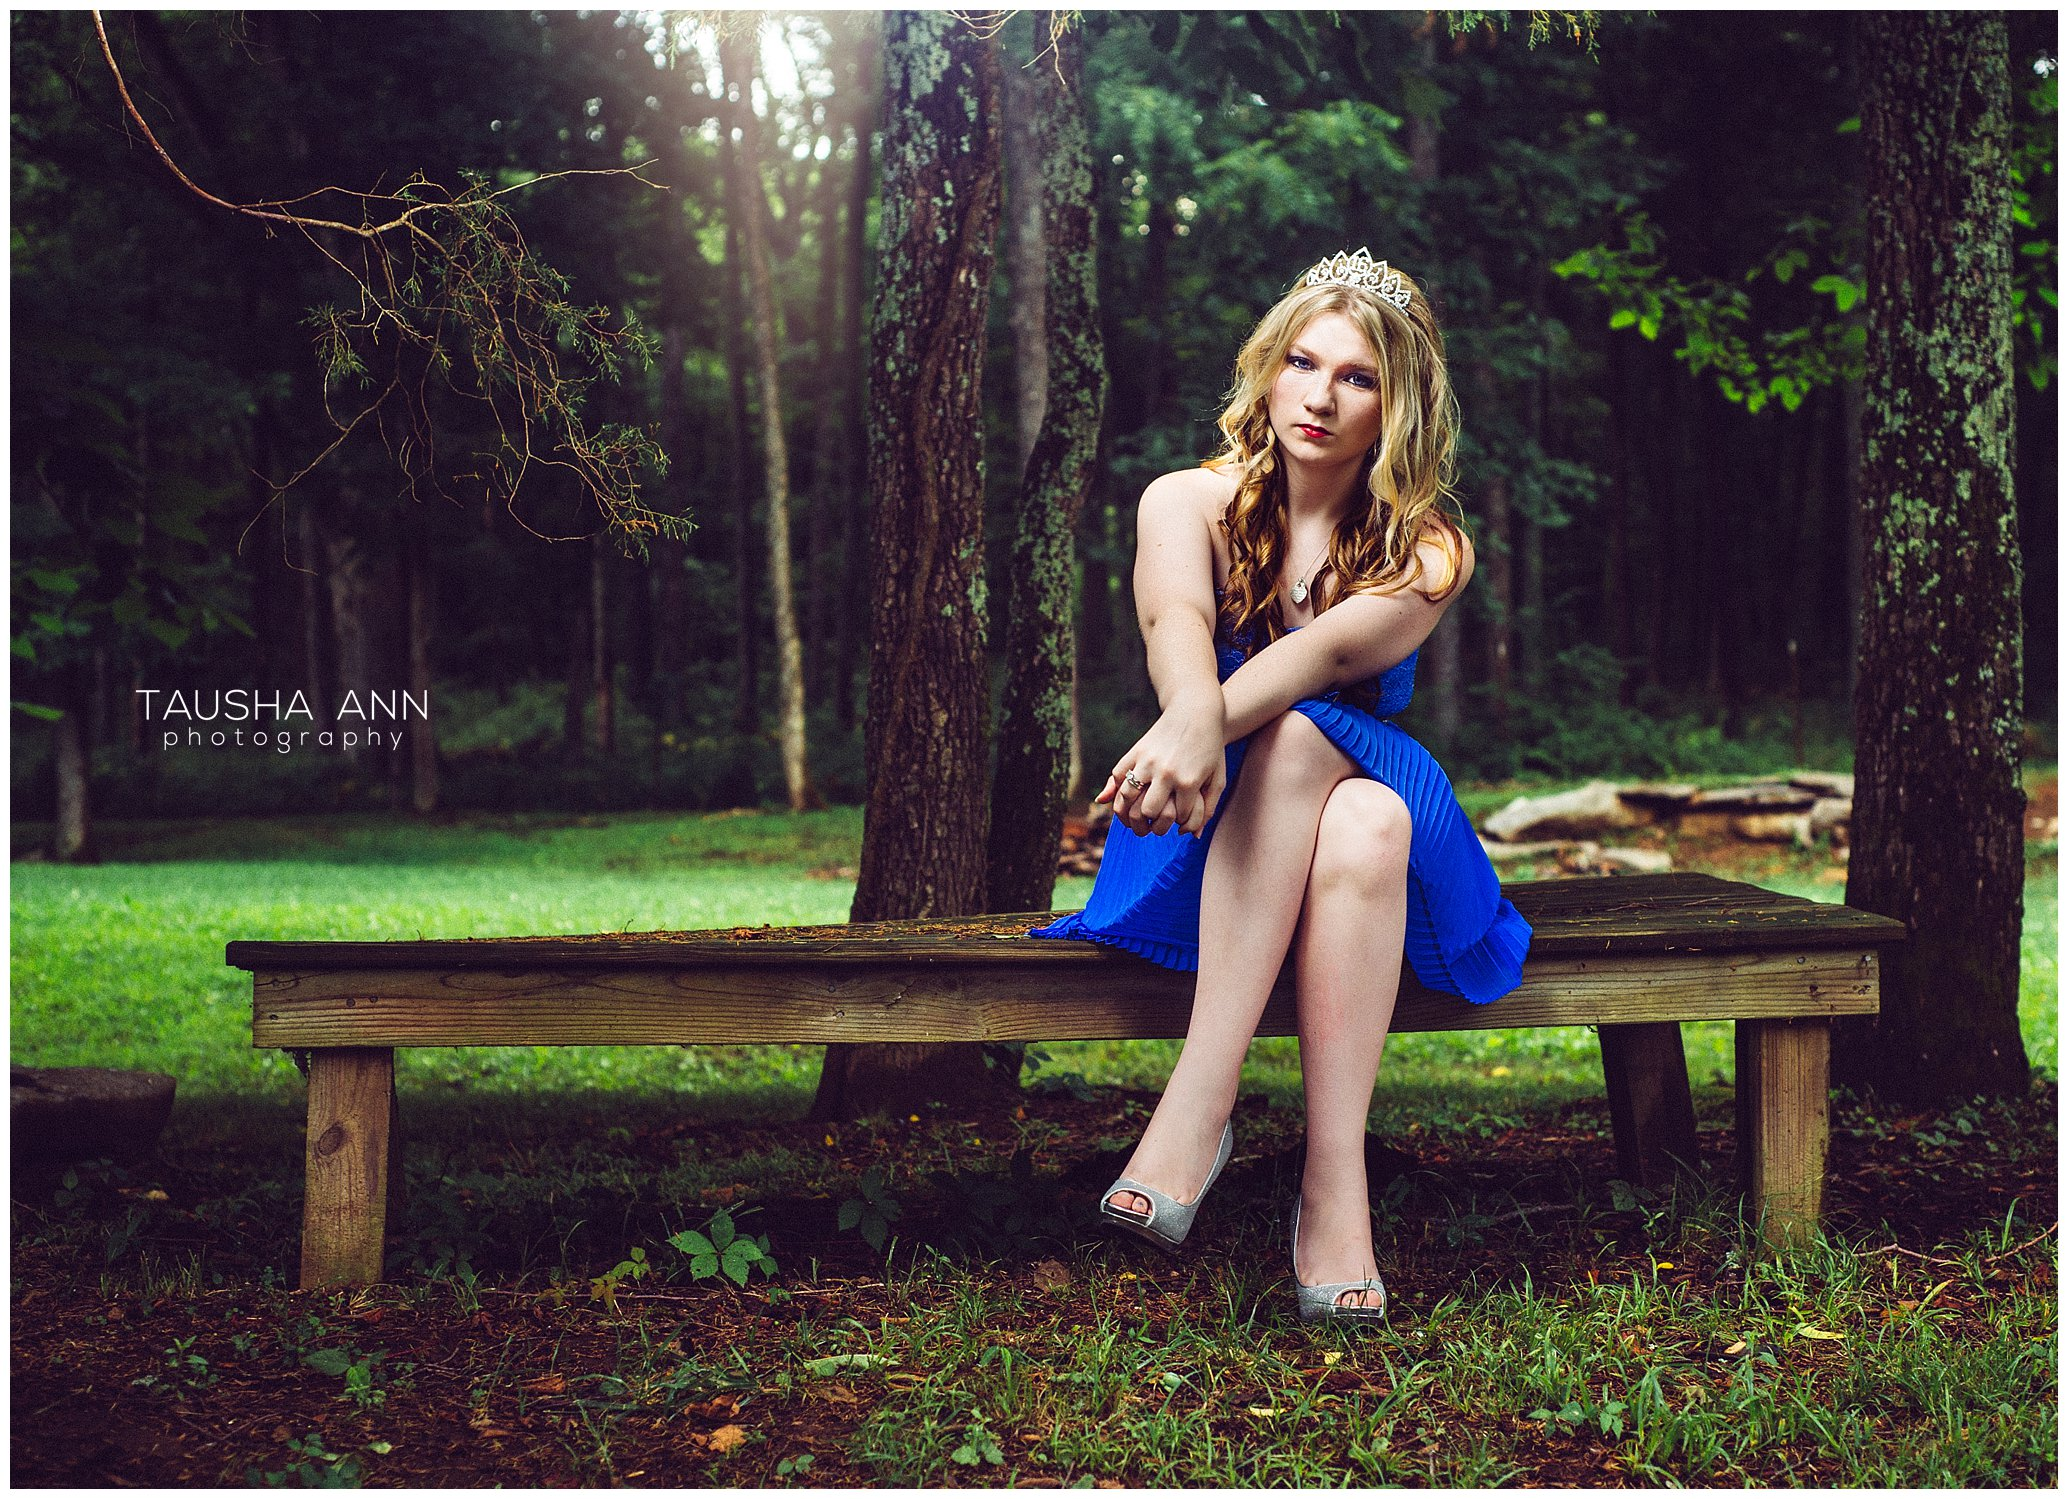 Sammie's_Sweet_16_Duck_Pond_Farm_Mt_Juliet_Tausha_Ann_Photography_Model_Nashville_Franklin_Spinning_Blue_Dress_Tiara_Sitting_On_Bench_Under_Tree